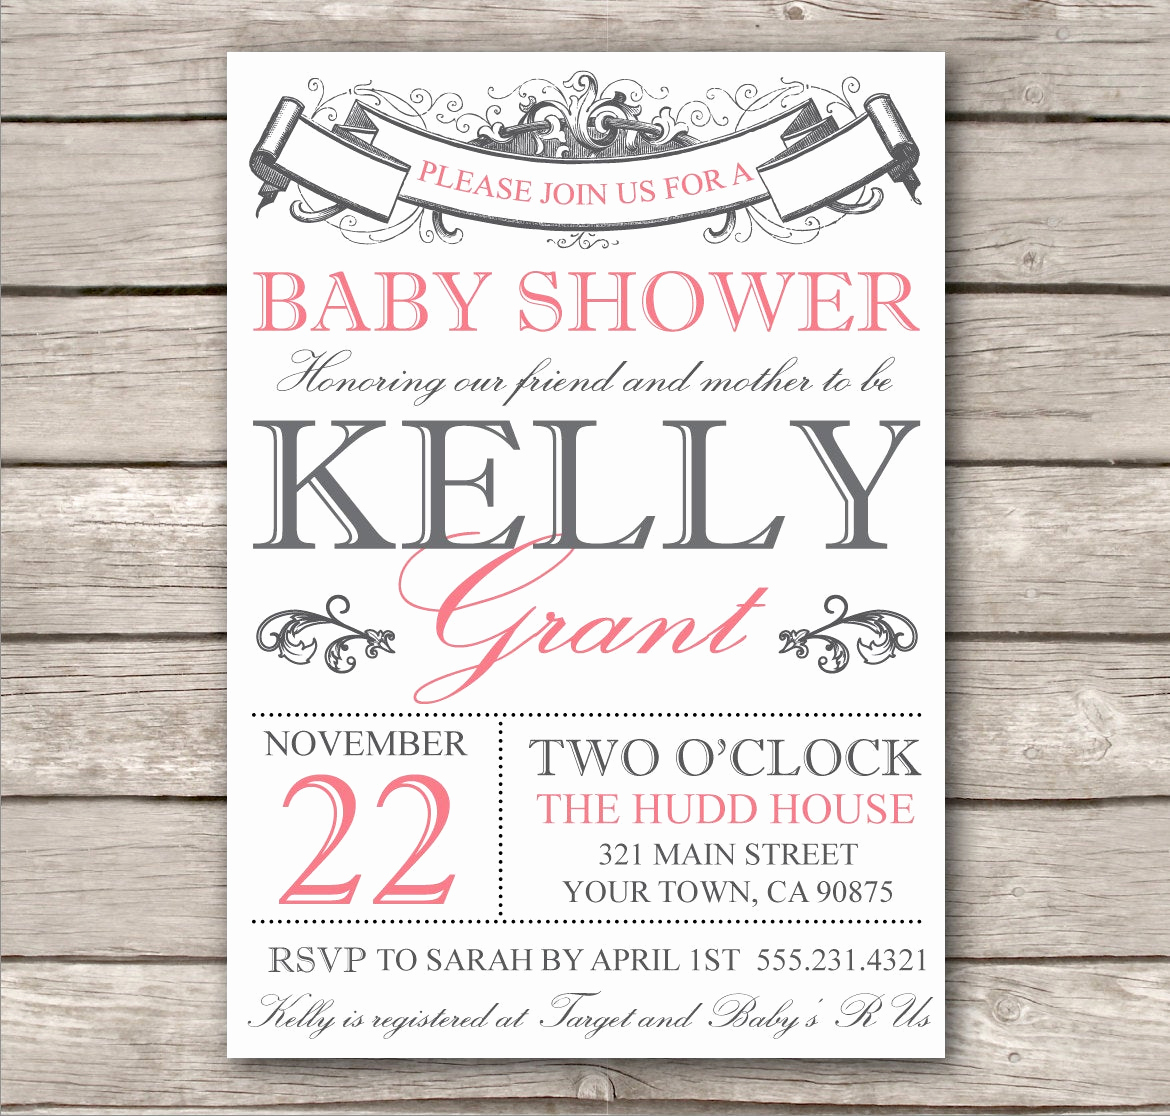 Bridal Shower Invitation Template Free Luxury Bridal Shower Invitation or Baby Shower Invitation by